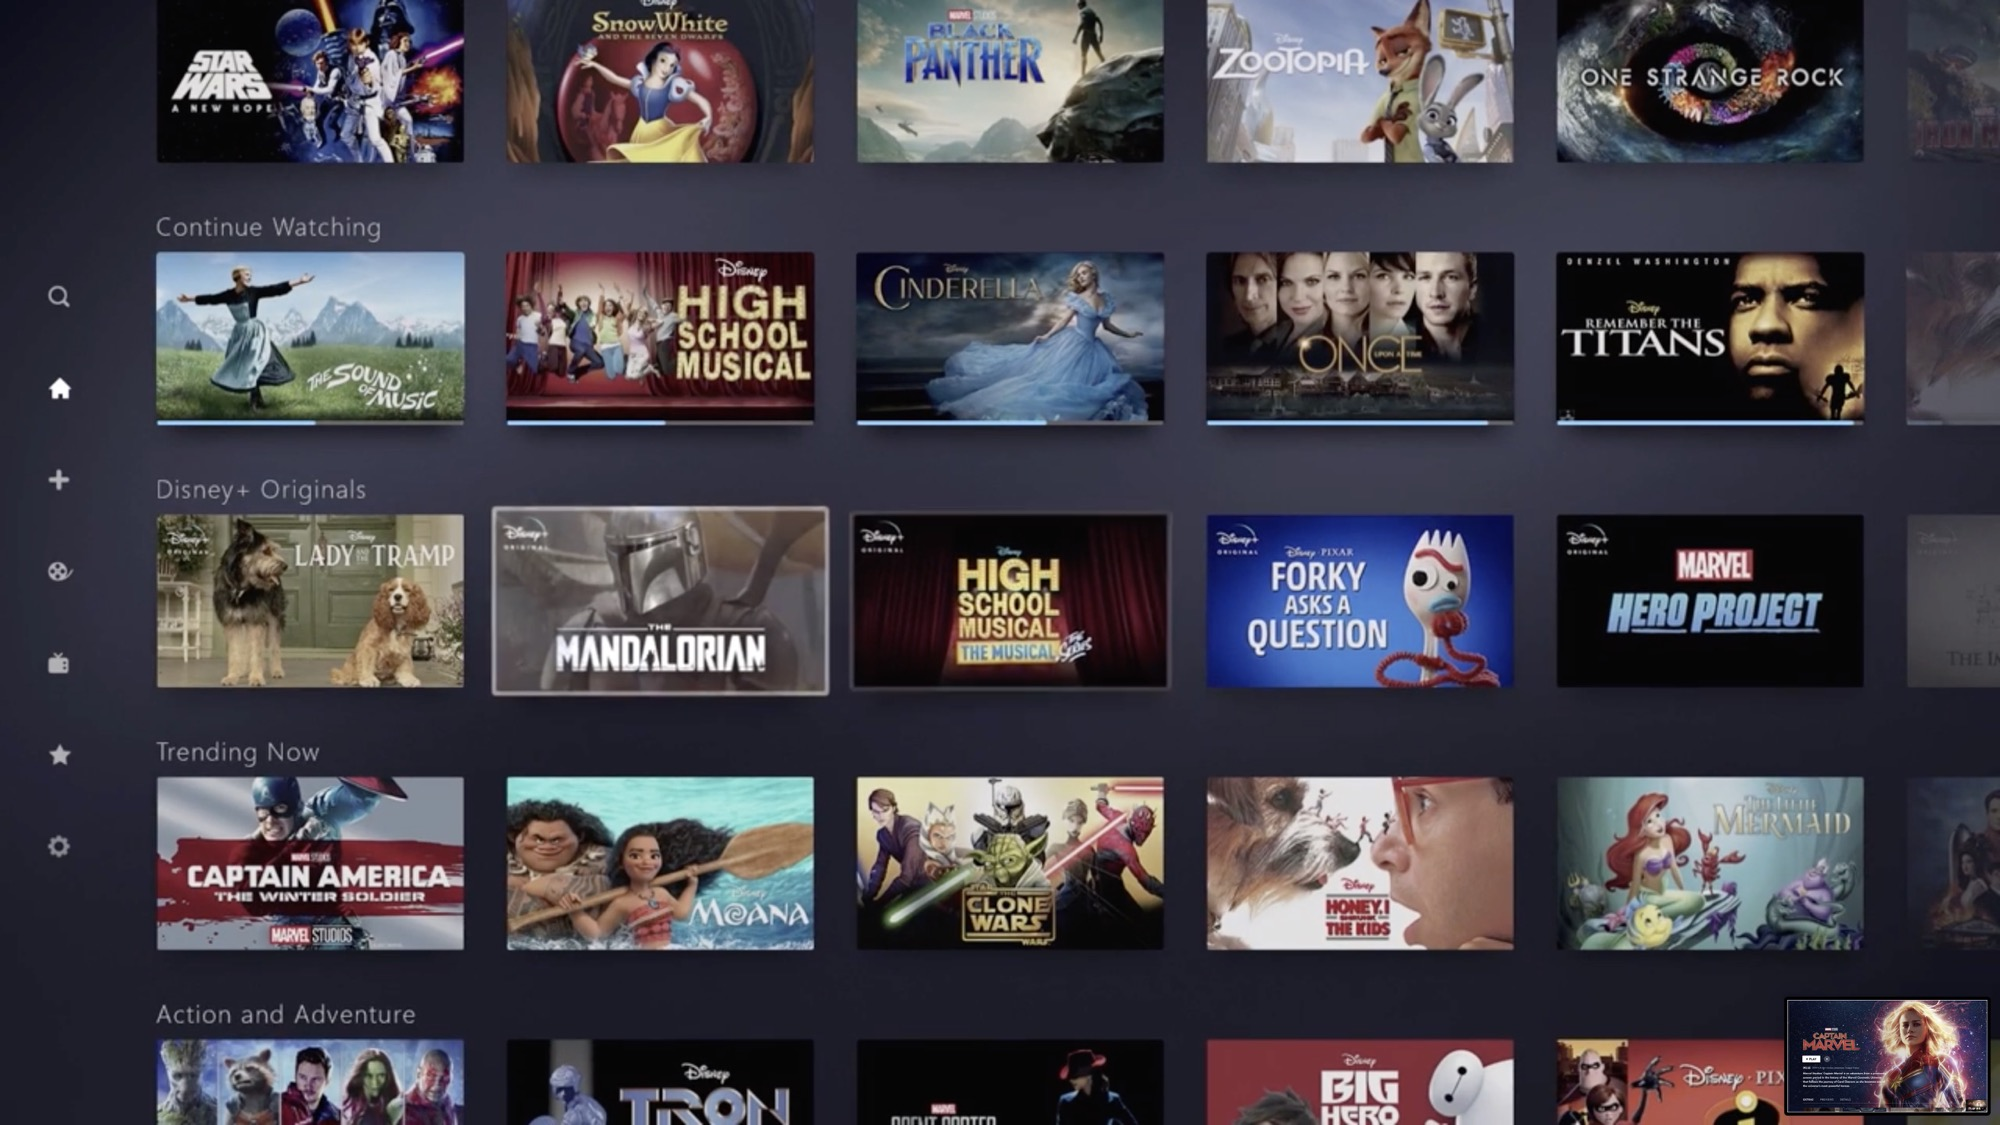 Disney+ launching on November 12 for $7/month with 4K HDR